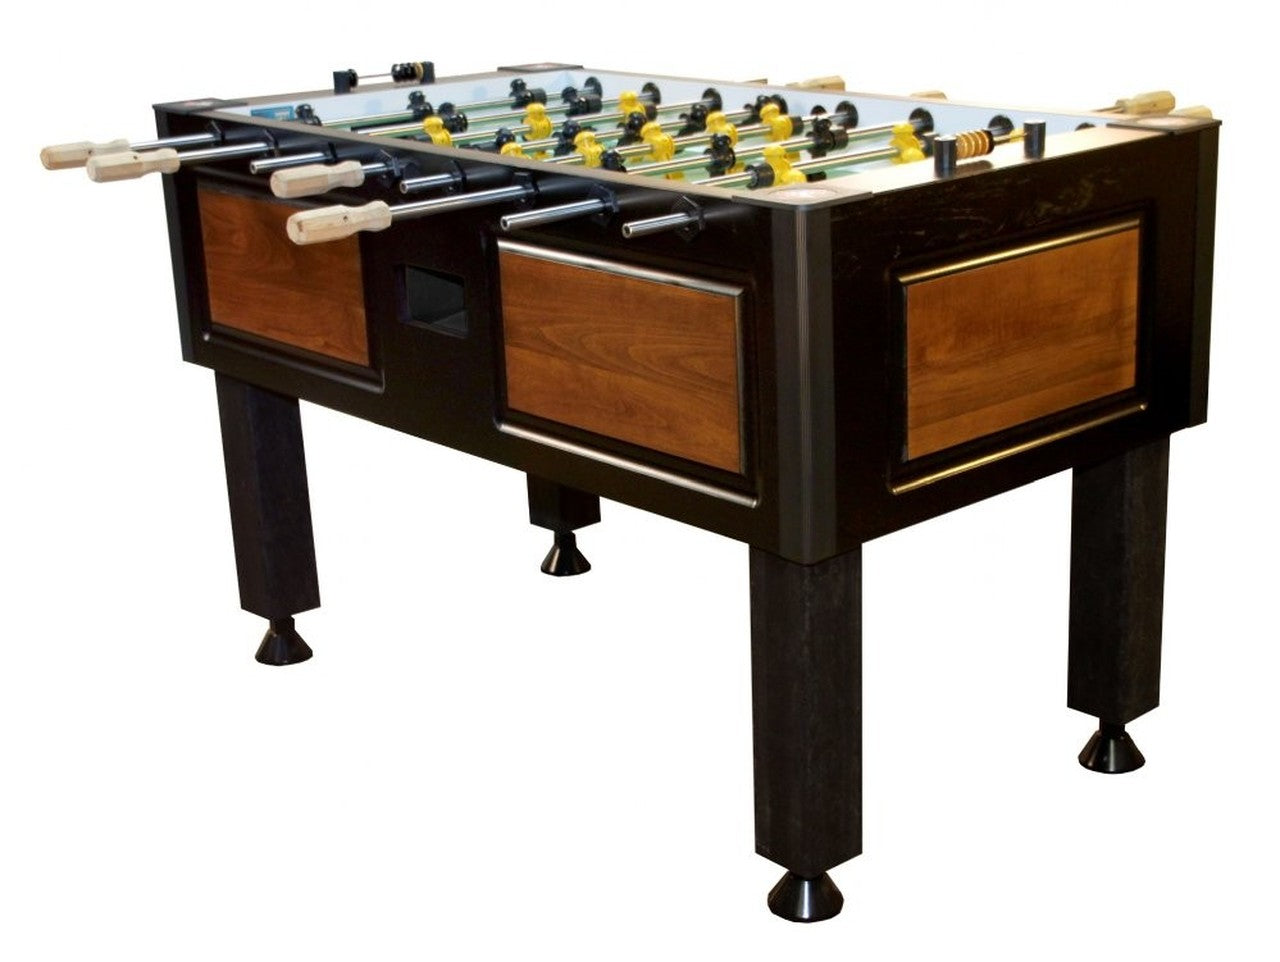 Tornado Worthington Foosball - Blatt Billiards